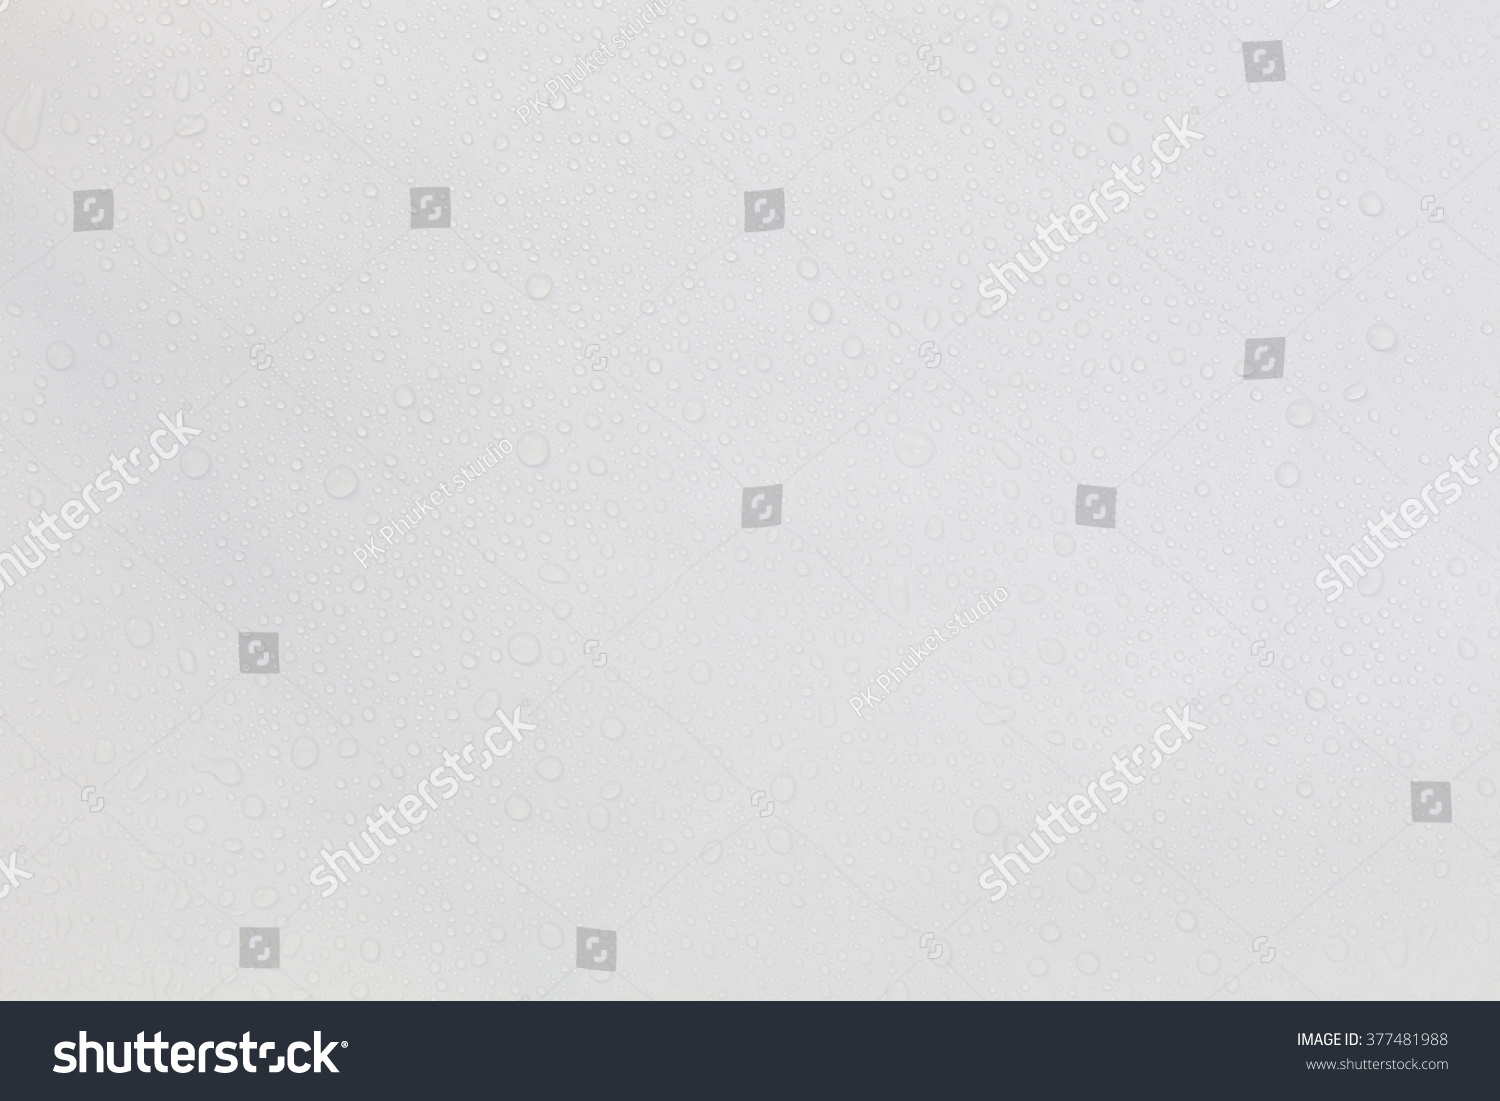 Water Drops On White Background Stock Photo 377481988 ...